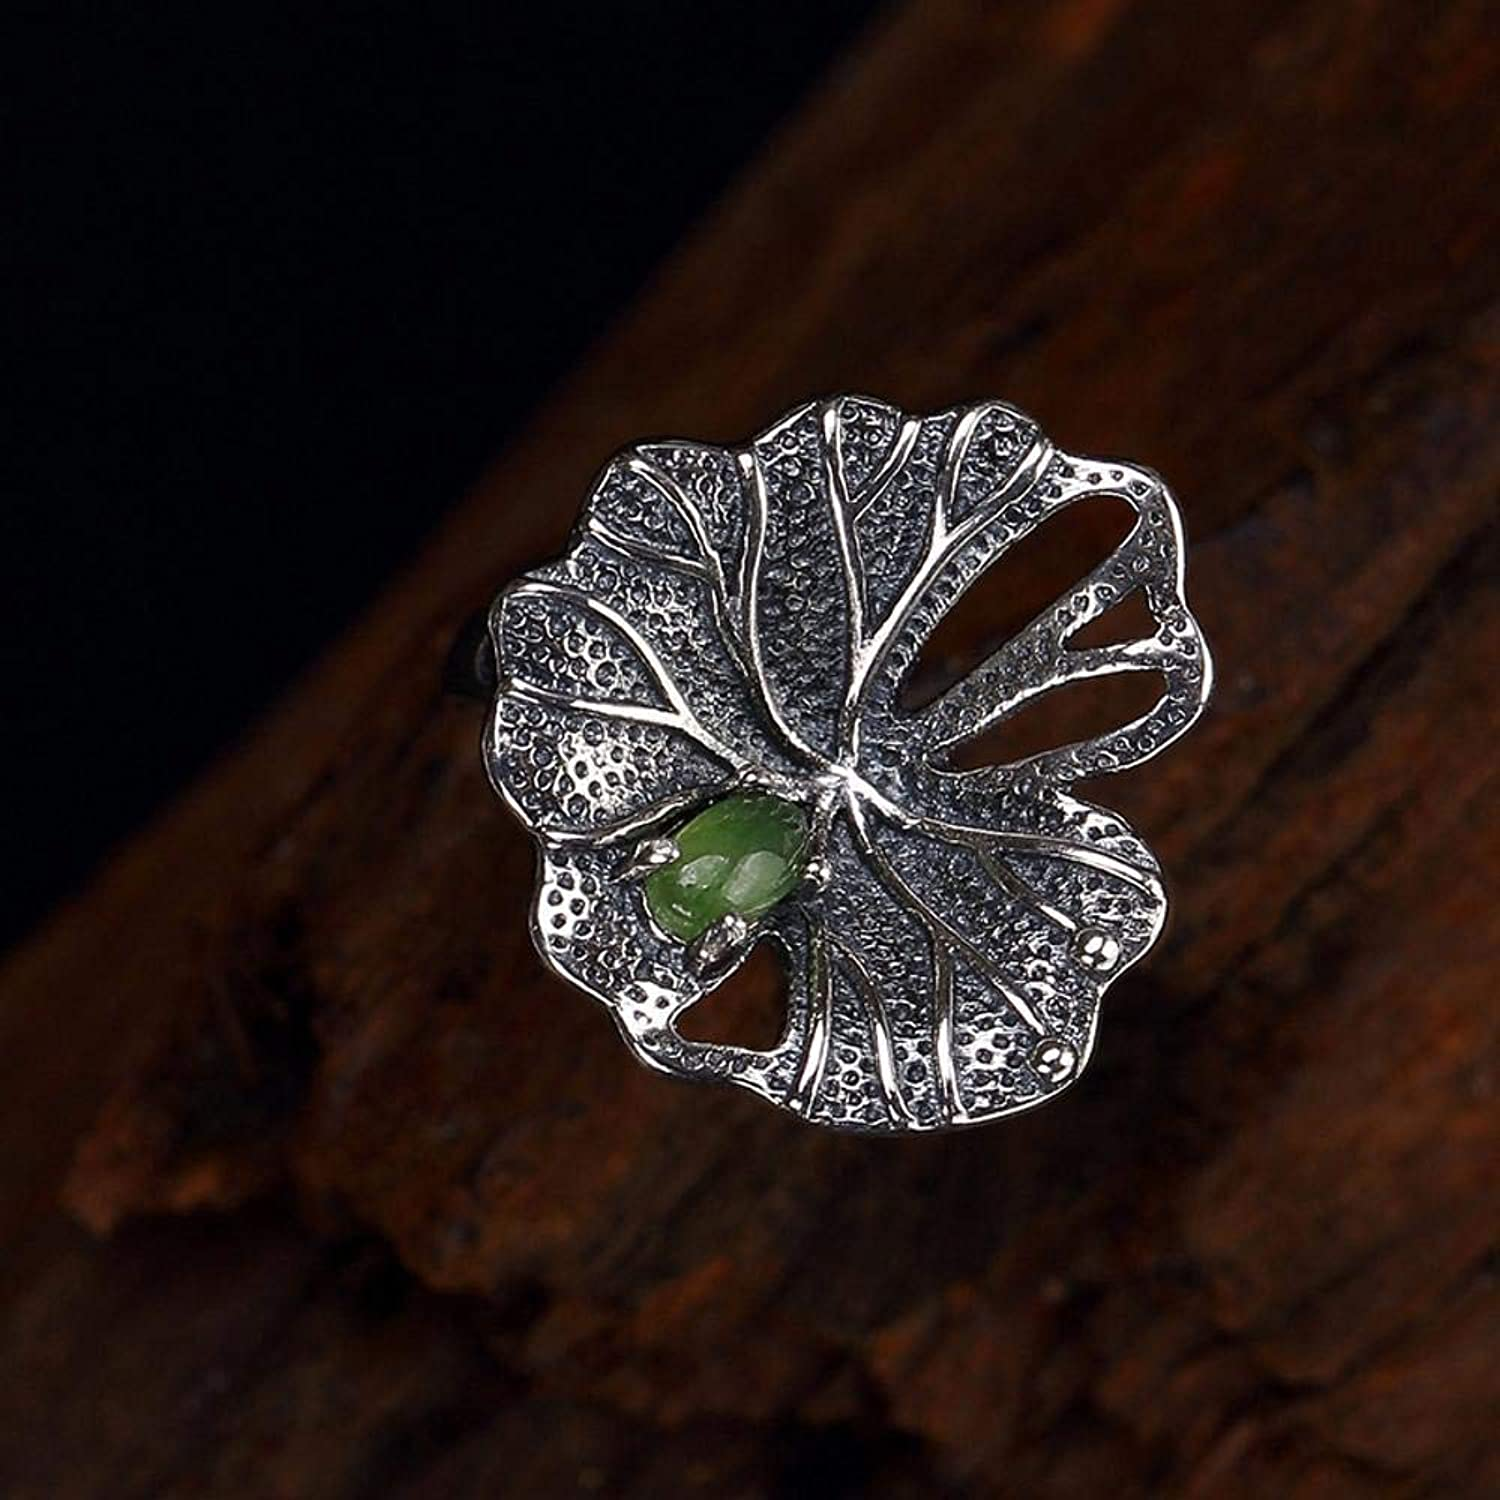 DTZH Rings Jewellery Ring S925 Pure Silver Inlaid Natural Jasper Fashion Female Lotus Leaf Ring Gift to Dear People